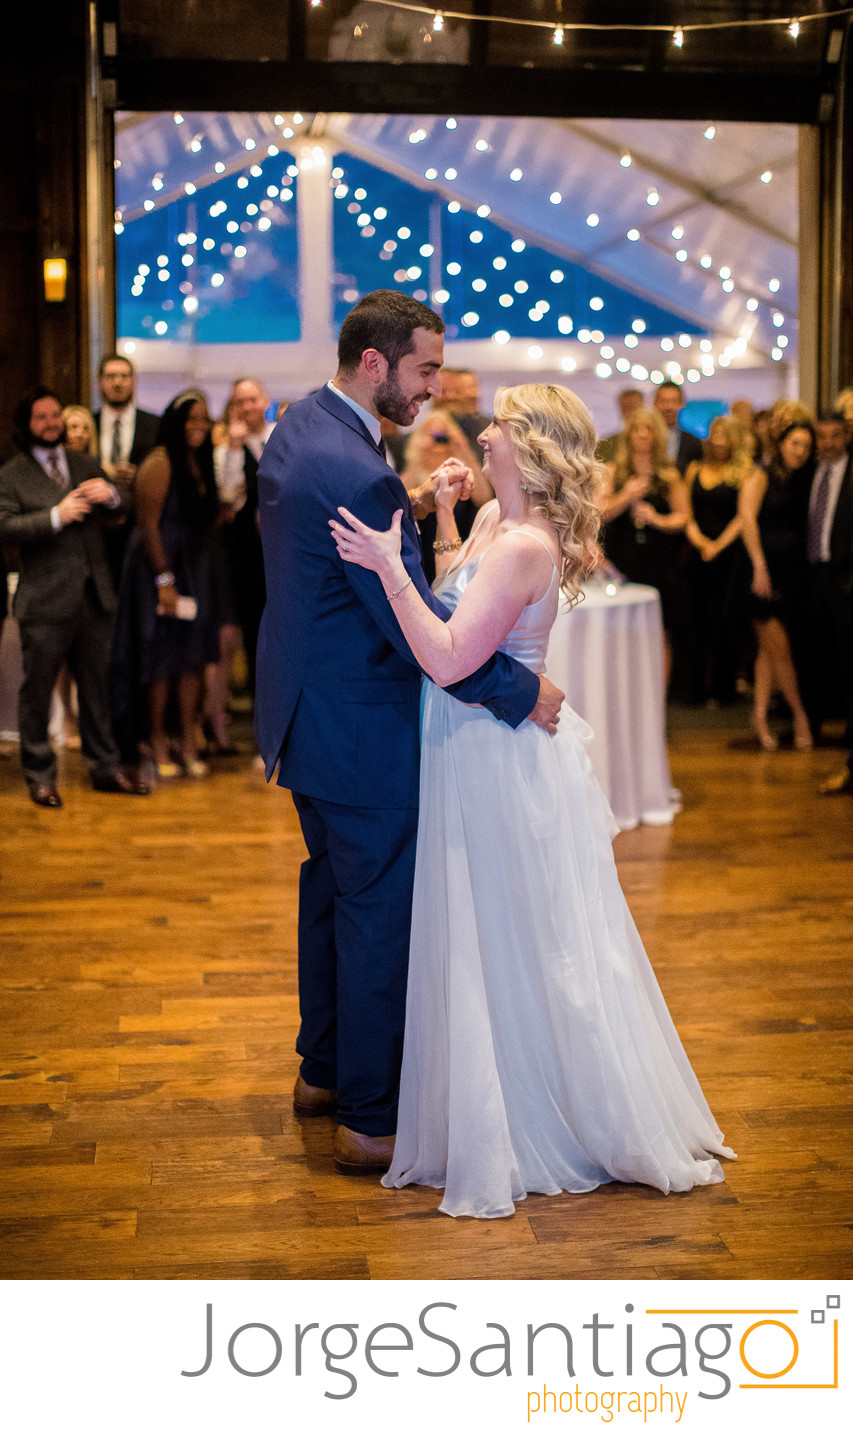 Pittsburgh Botanic Garden Wedding Photos - First Dance